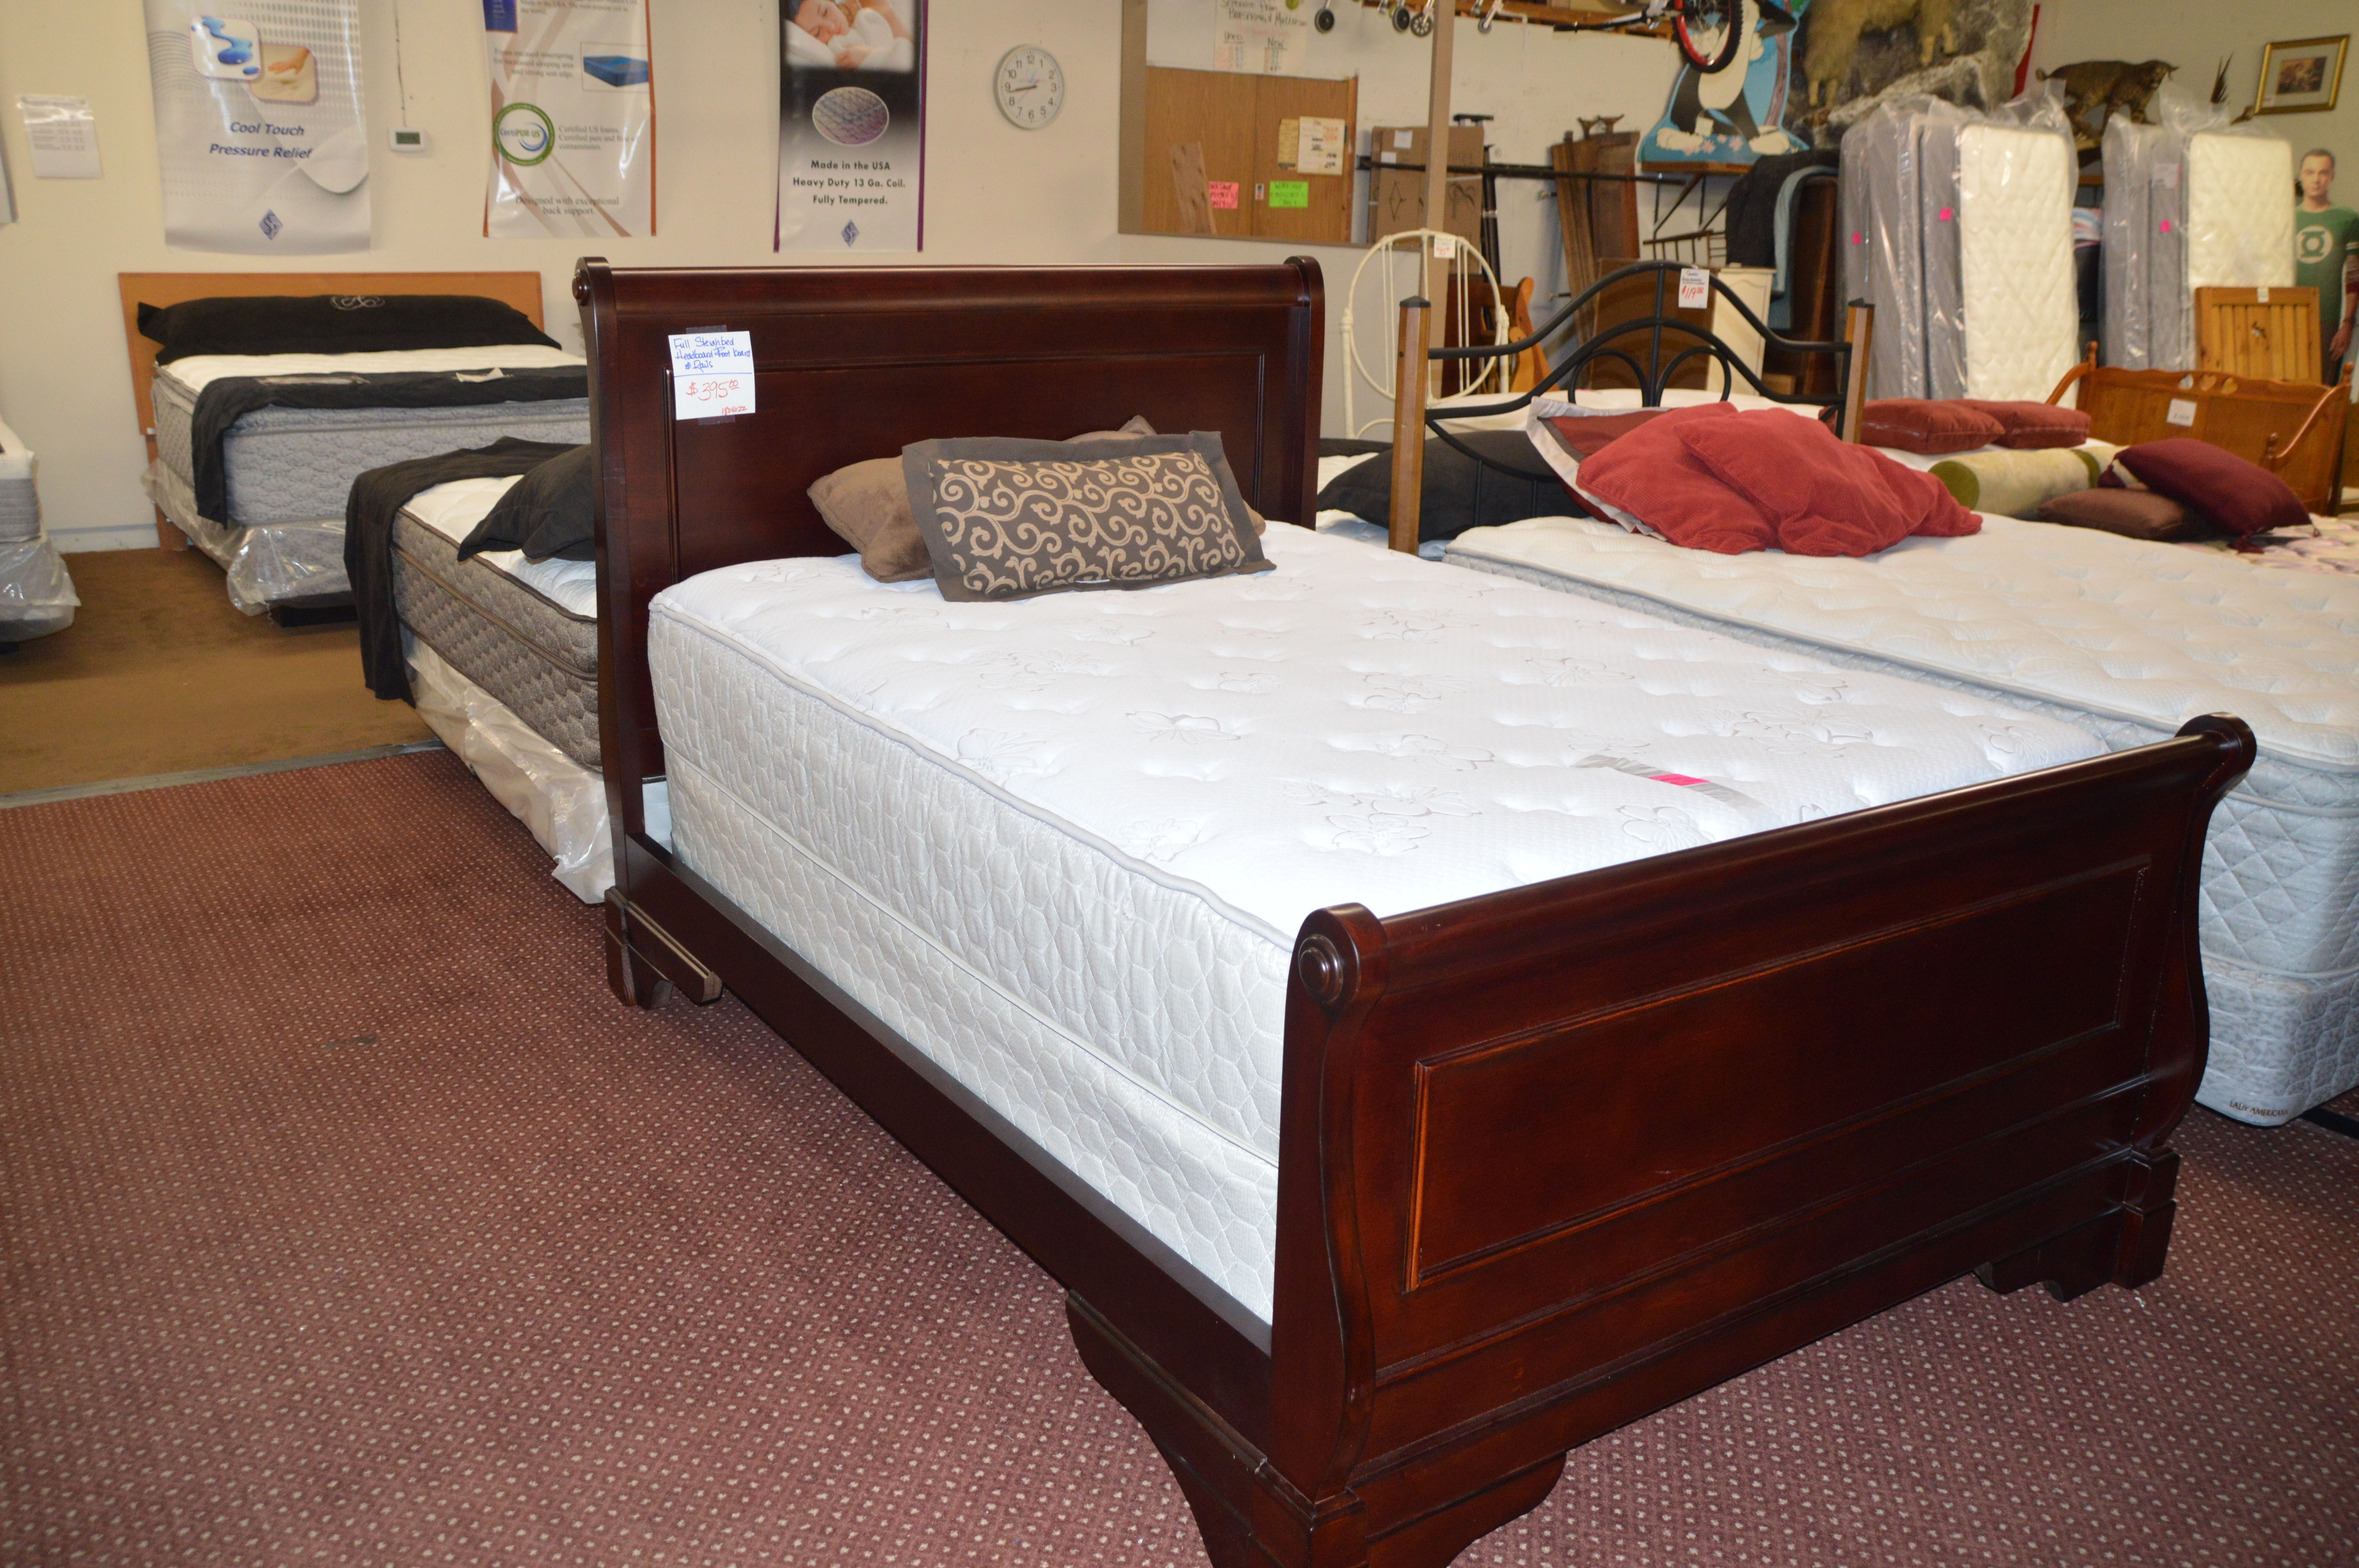 Wood Full Size Sleigh Bed Frame. Sleigh bed frame, Bed